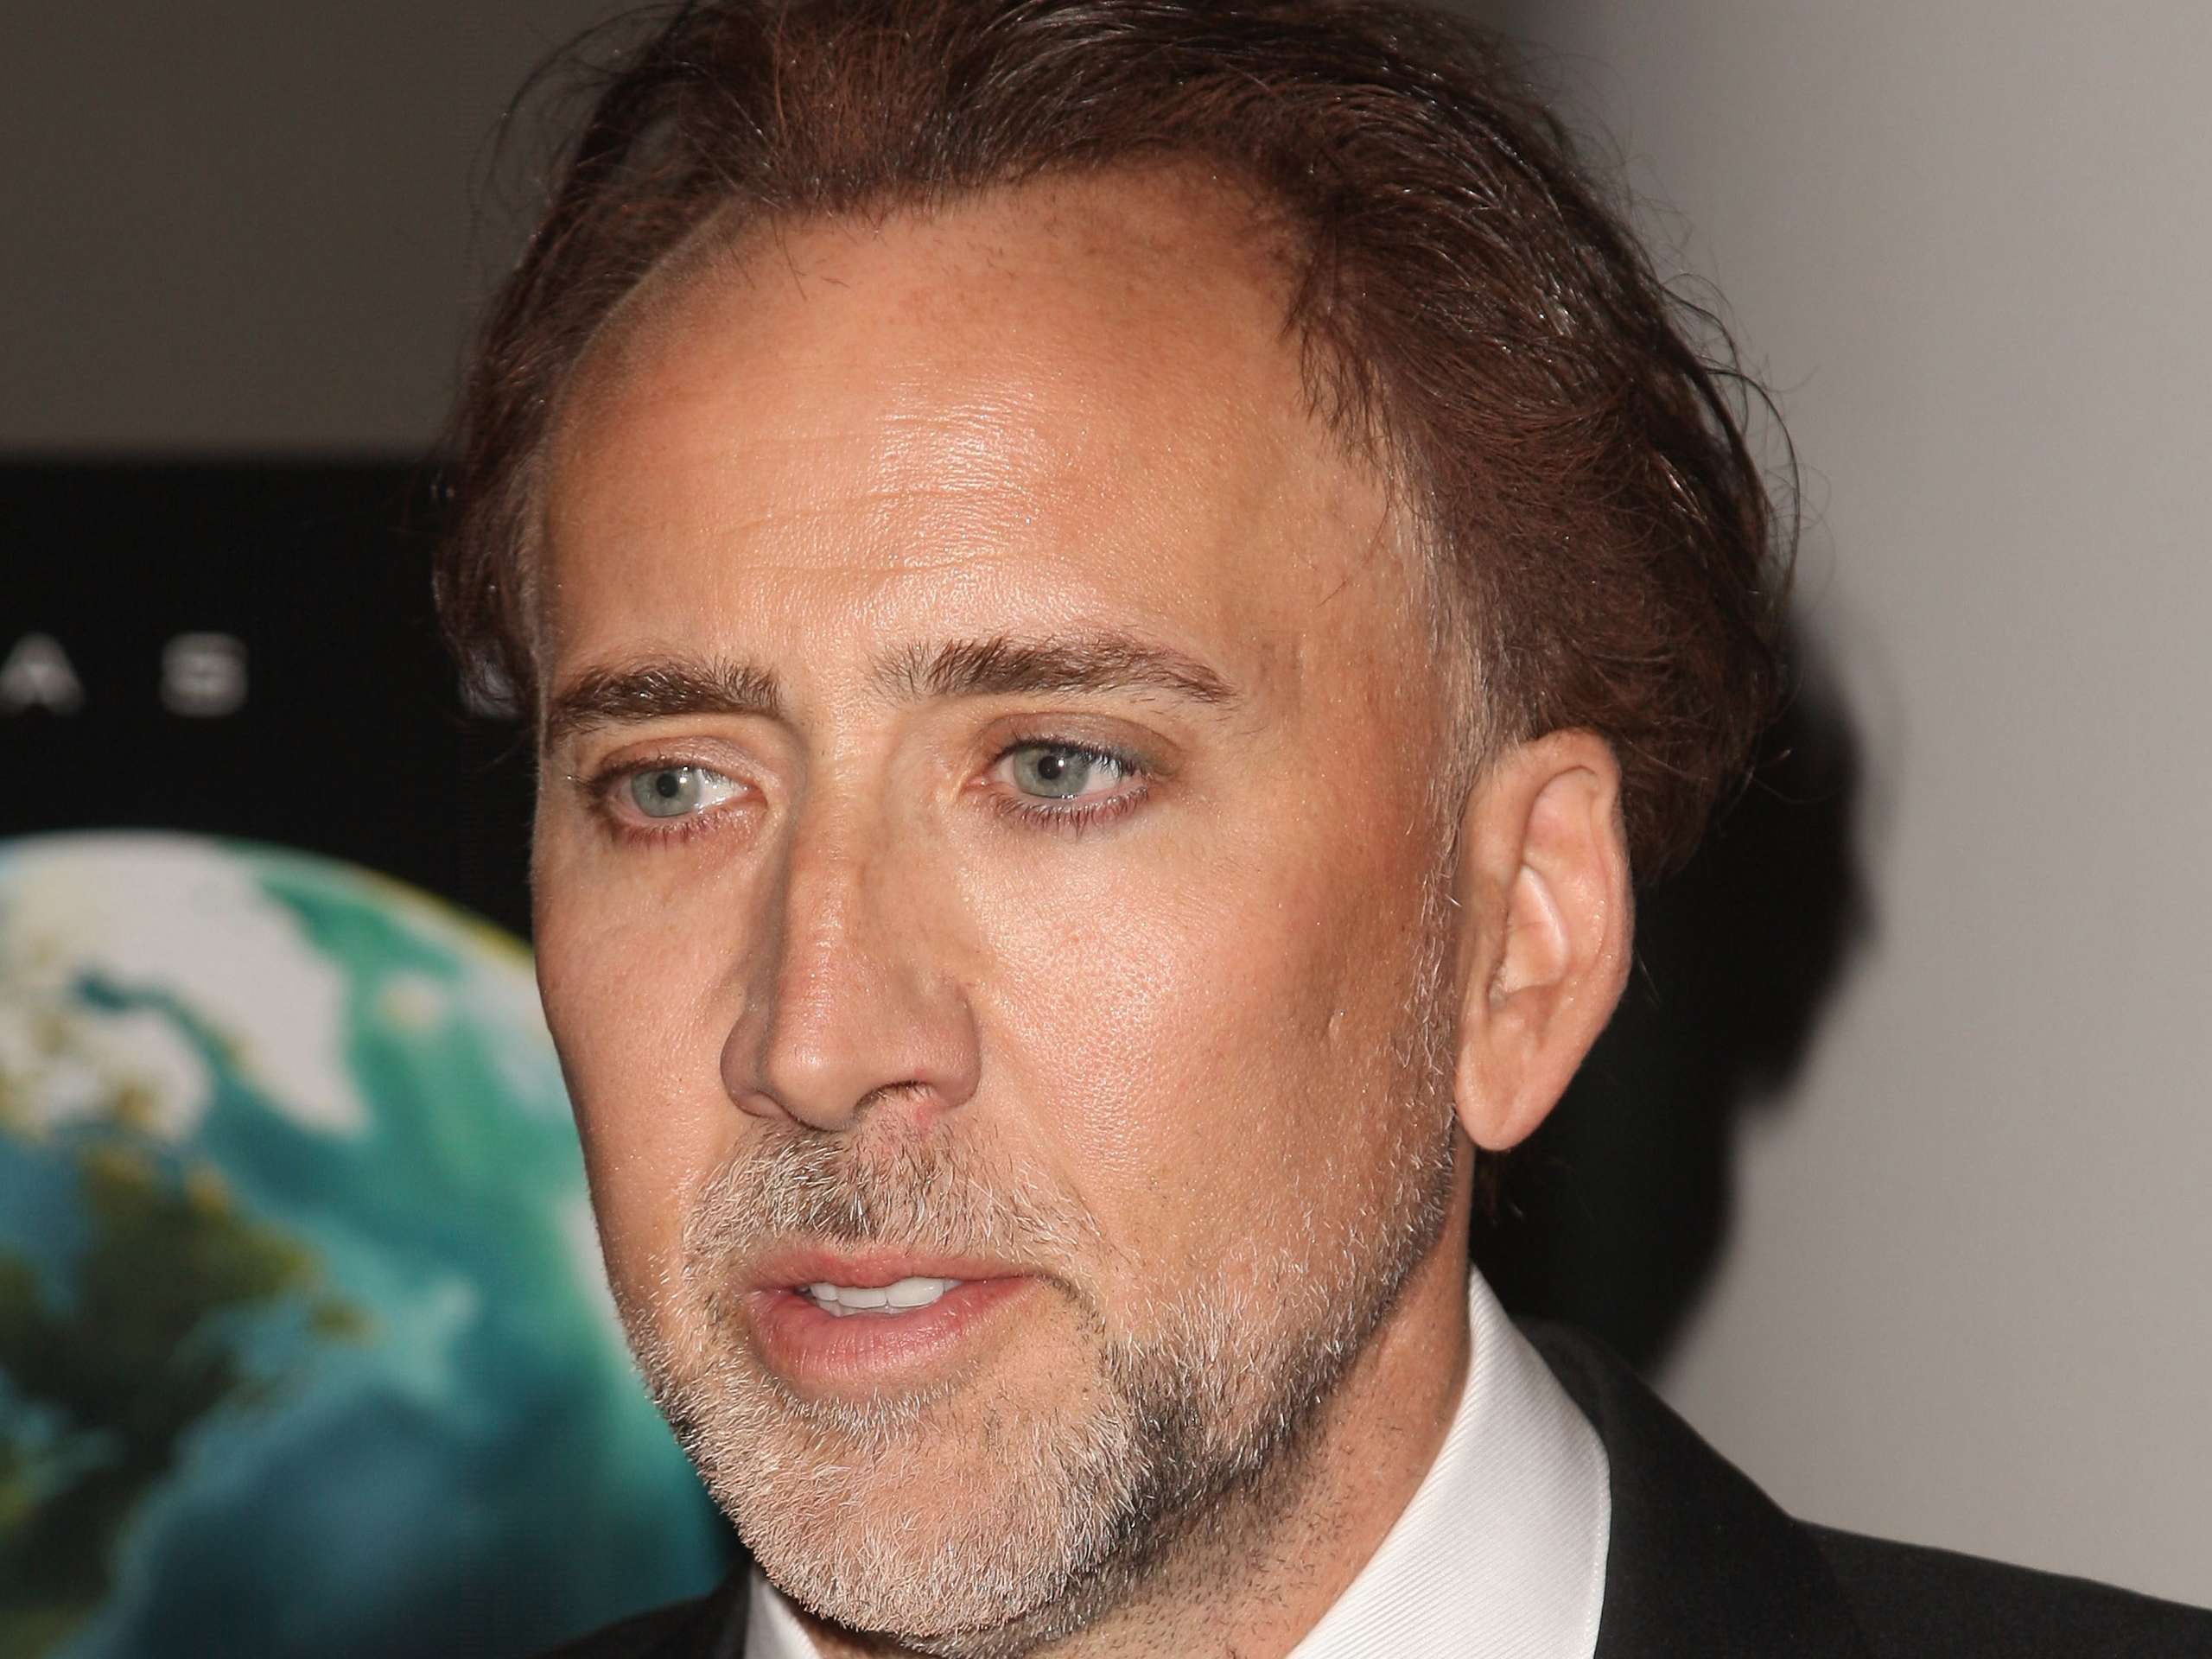 Nicolas Cage Desktop Wallpapers for HD Widescreen and Mobile 2560x1920